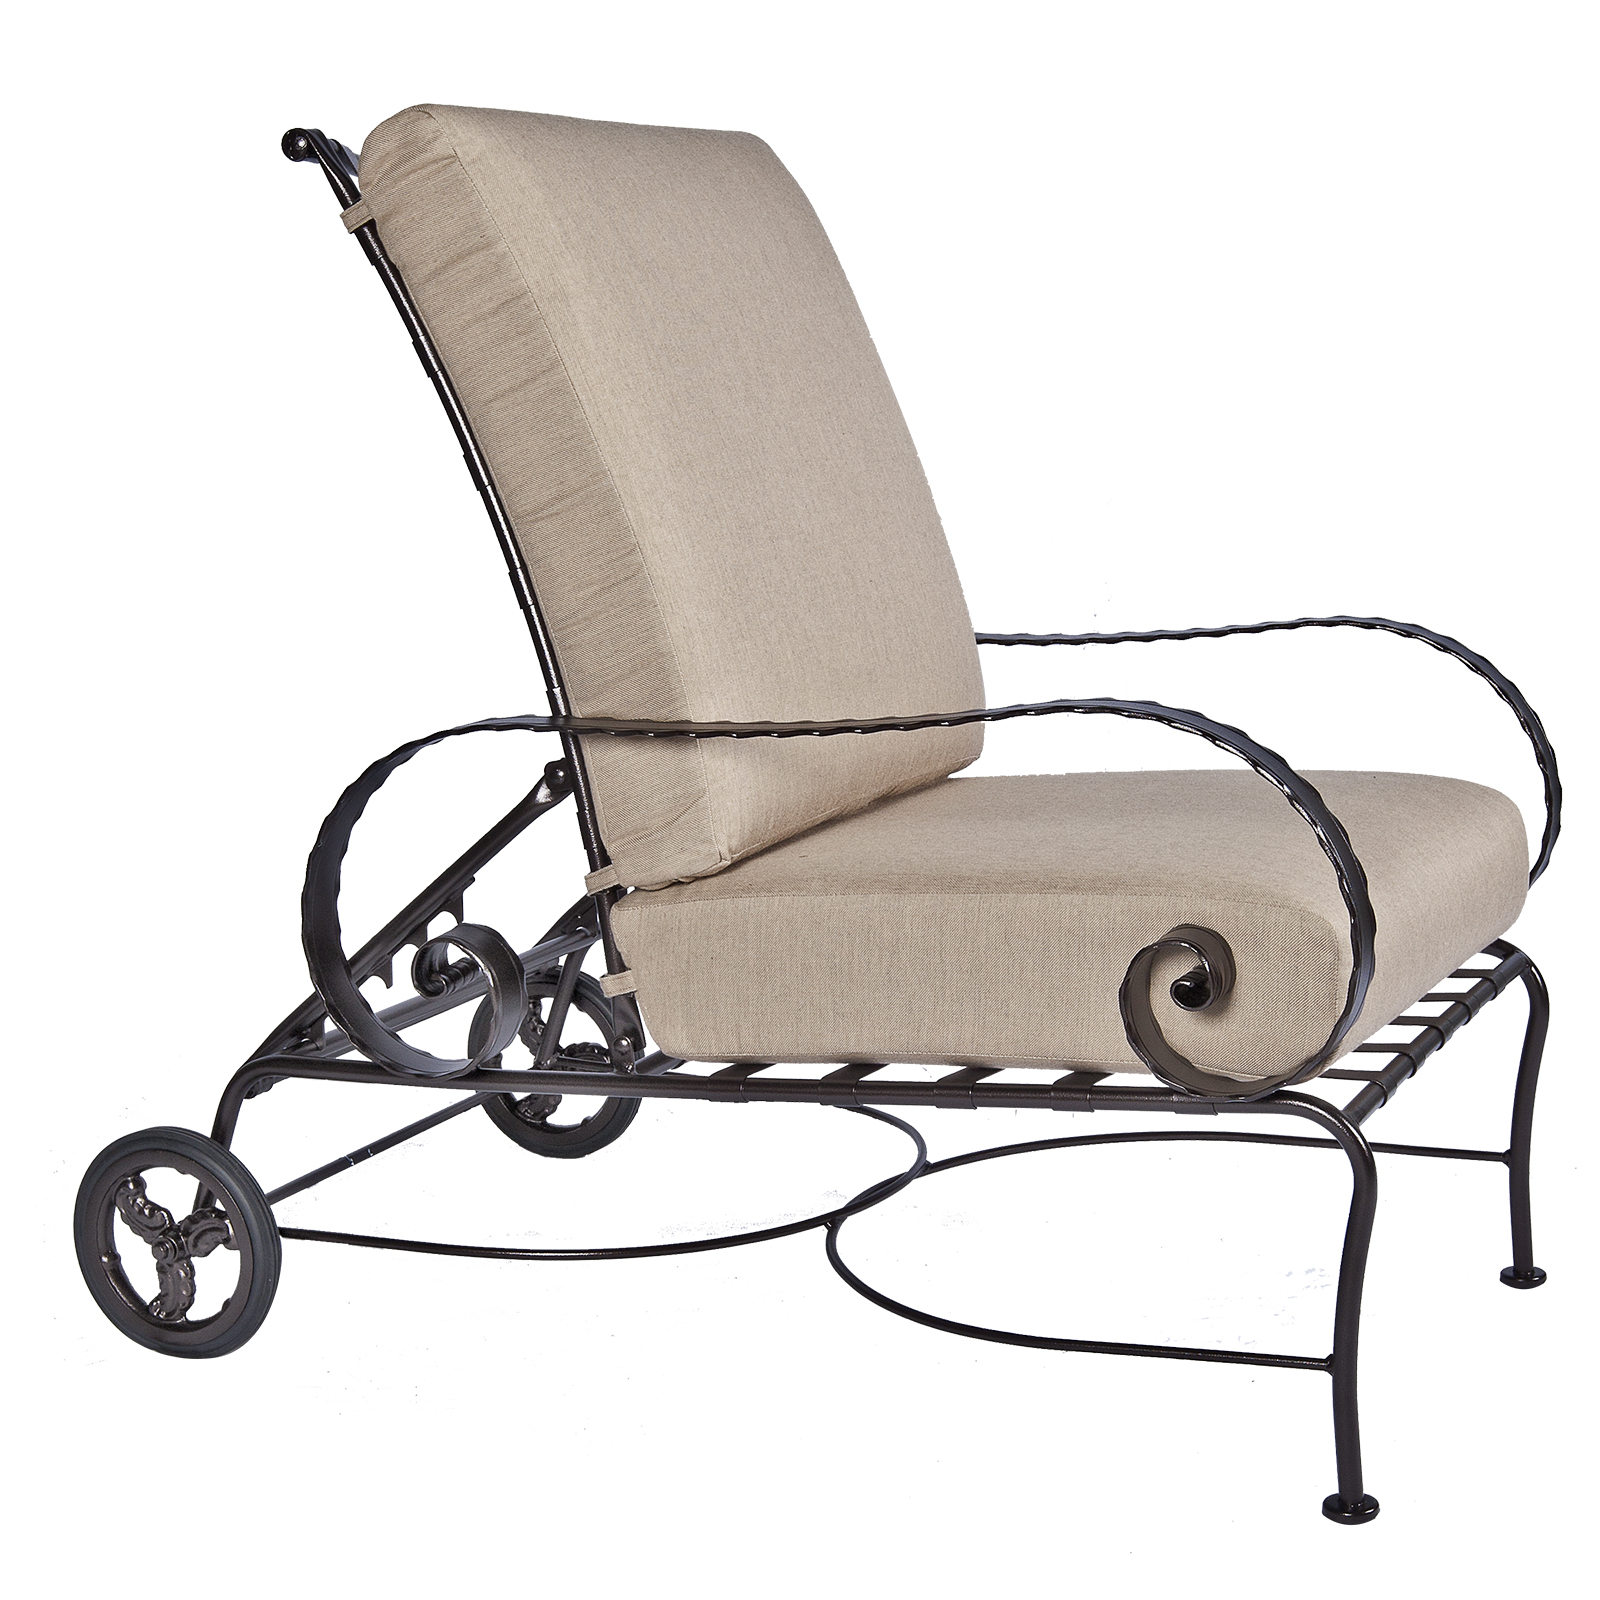 Hi-Back-Adjustable-Lounge-Chair-937-ACCW_Catalog_GR35_1600-Classico-W-OW-Lee